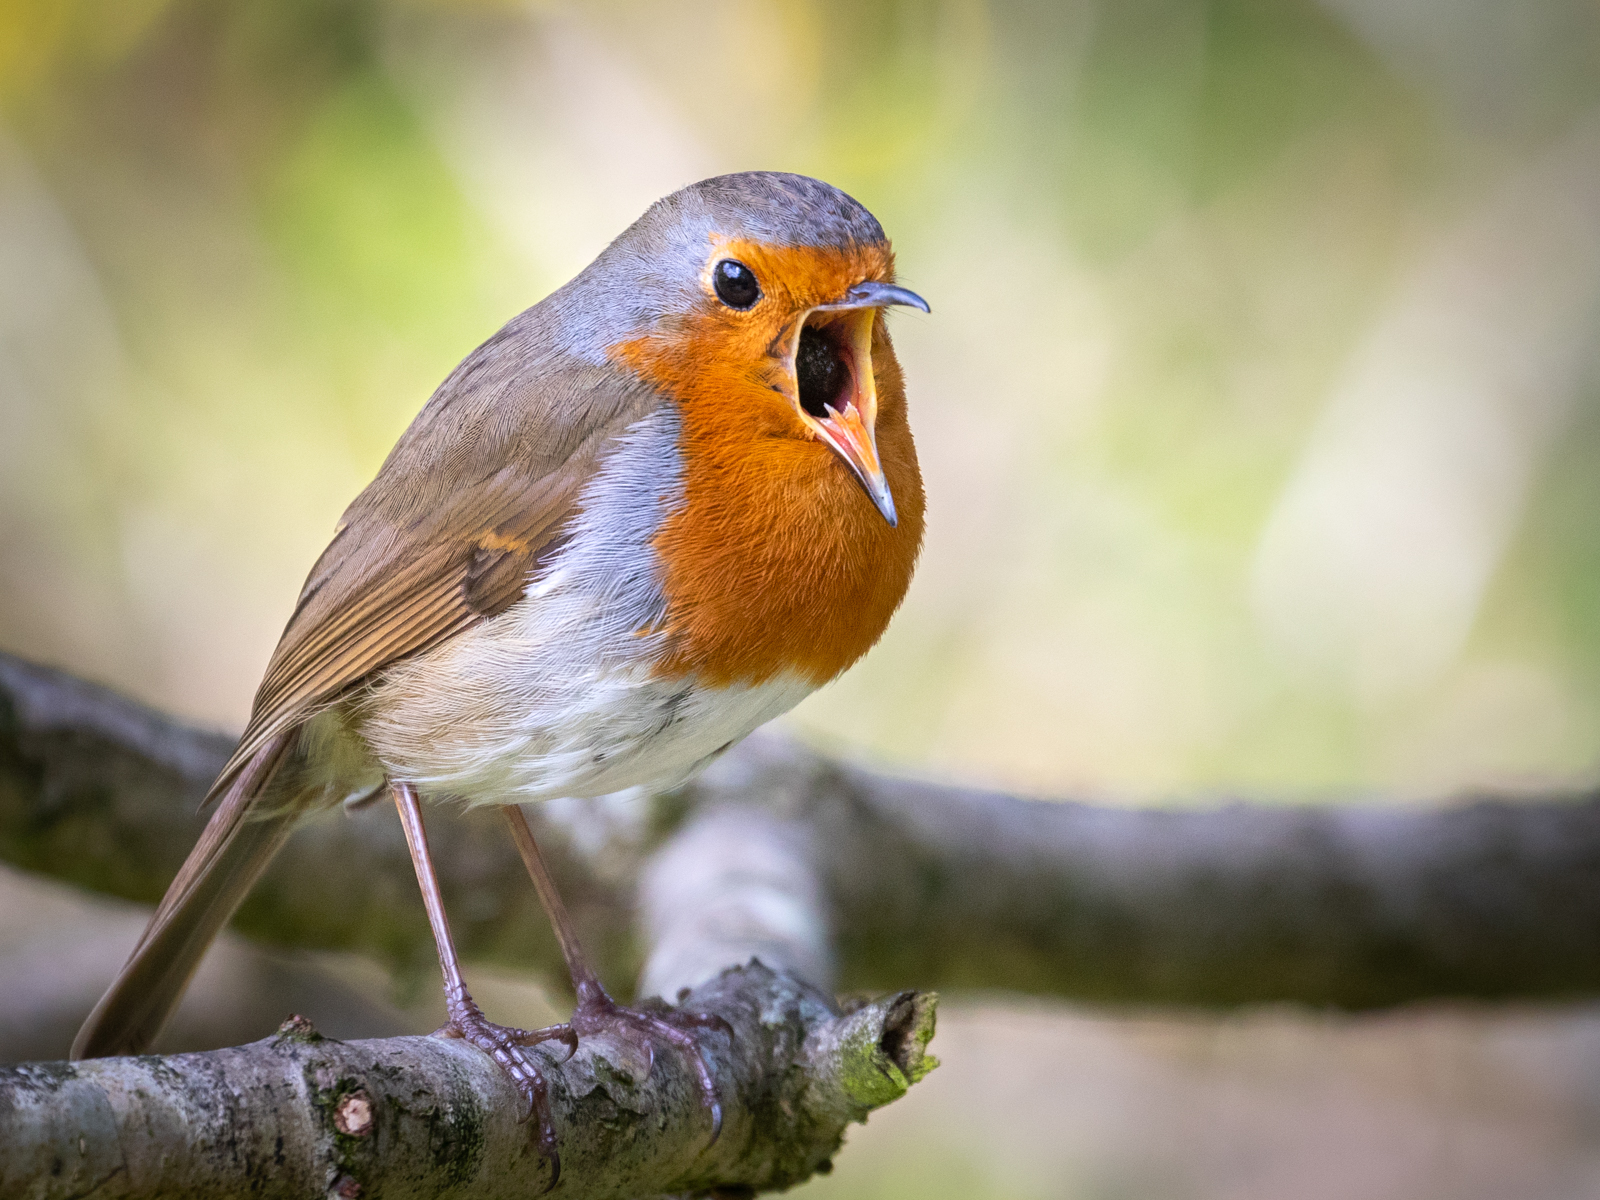 Bird Song by Chris Andrews